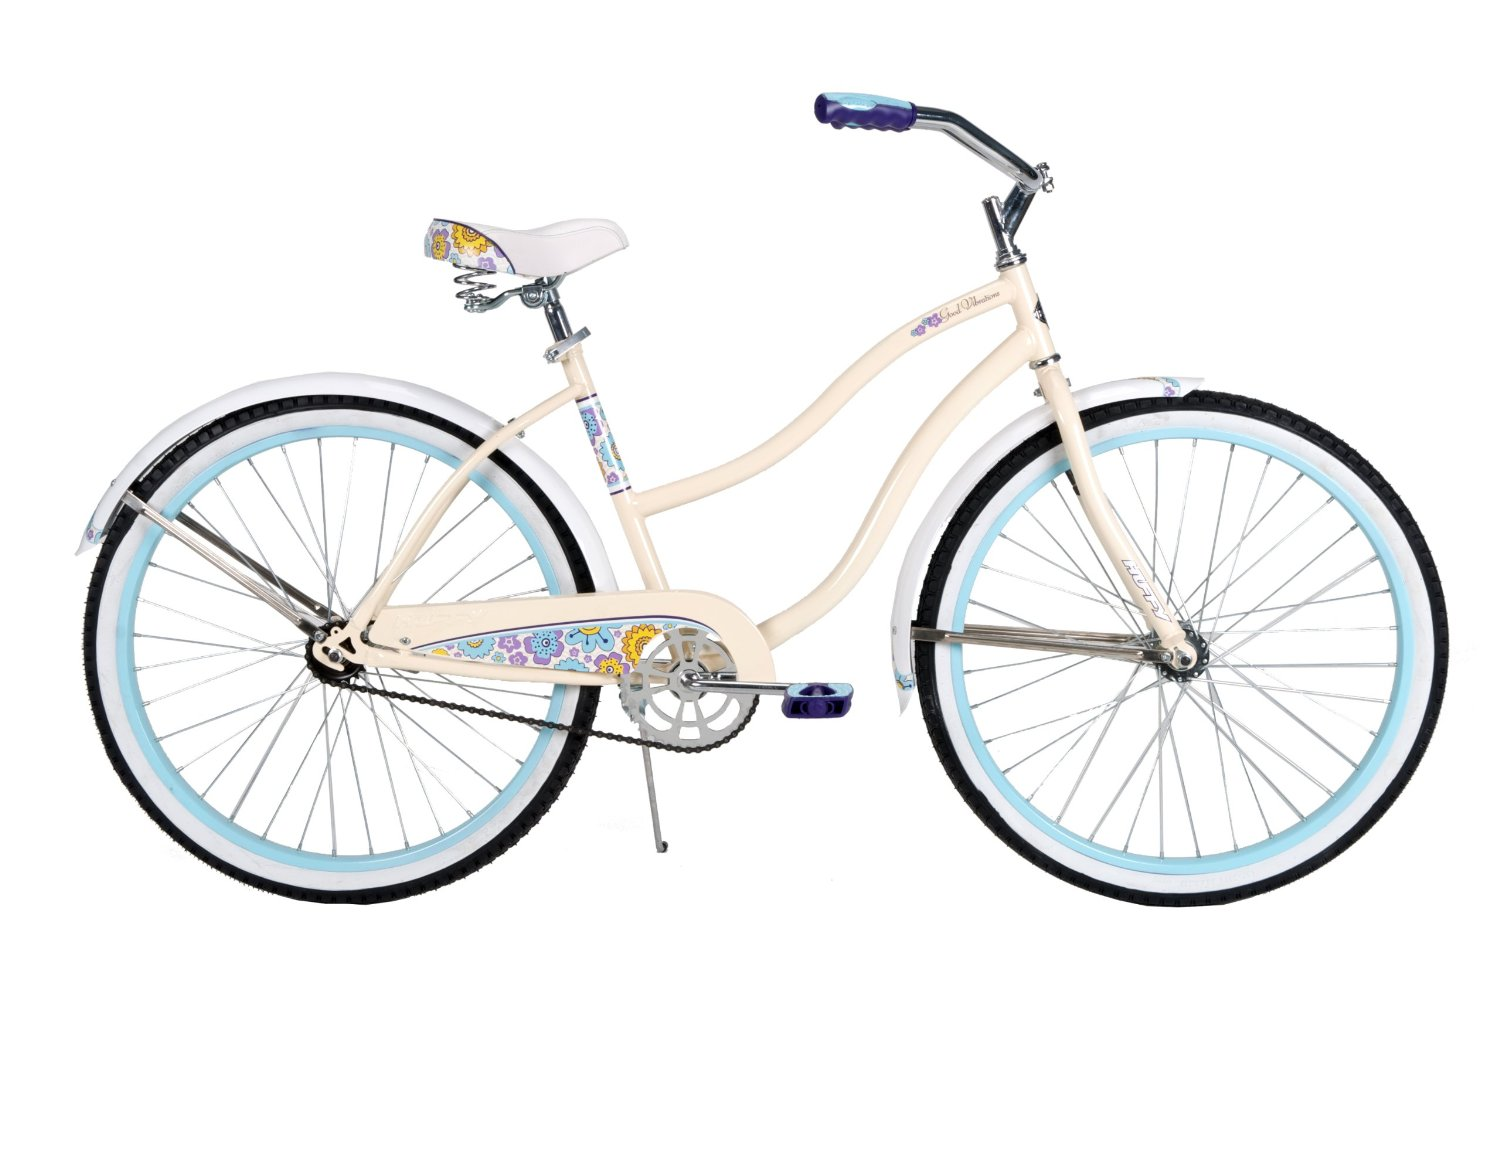 3acca4bf761 Exercise Bike Zone: Top Best Huffy Bicycle Women's 26-Inch Cruiser ...